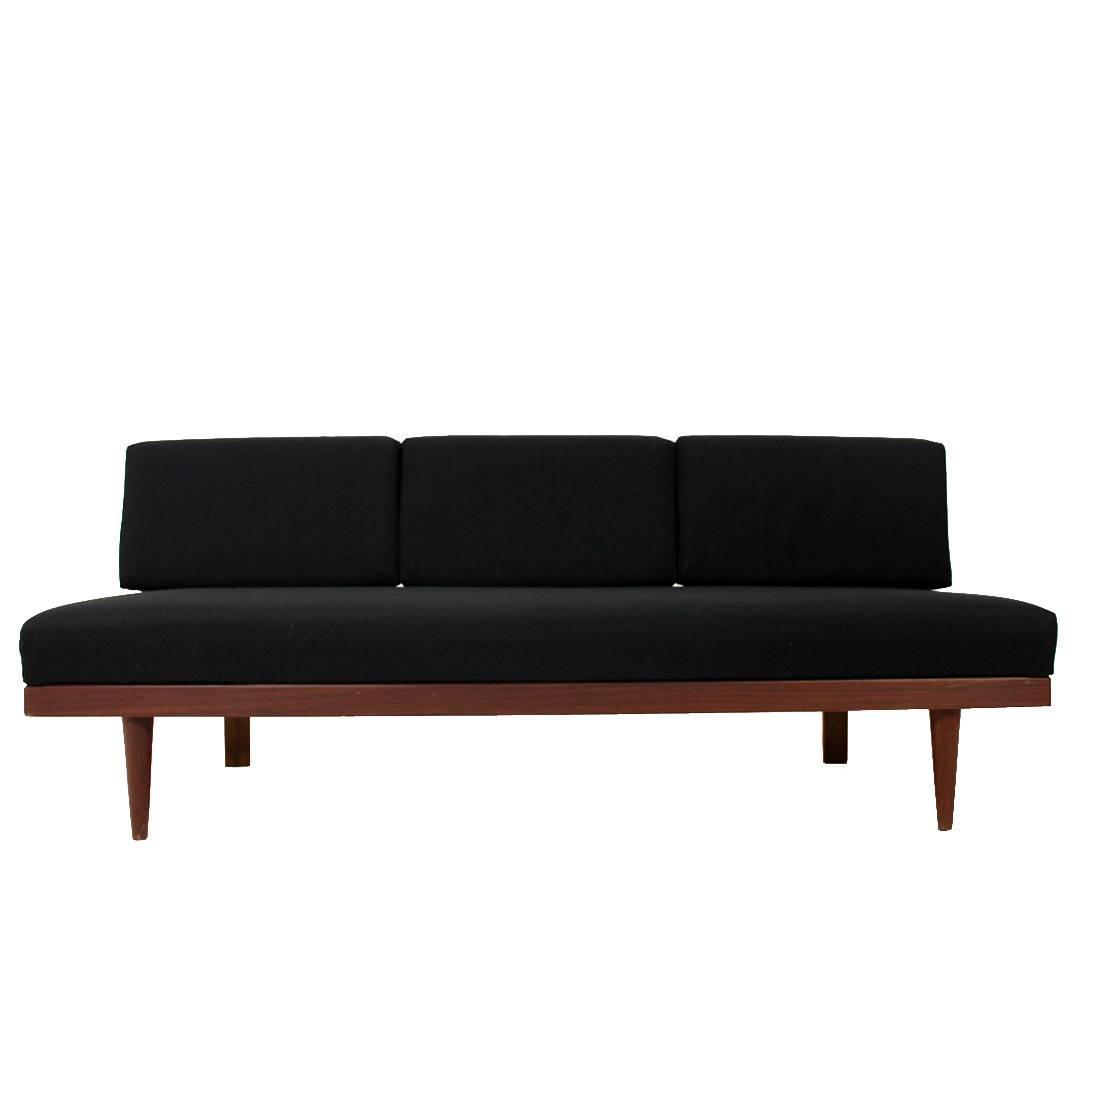 Midcentury Daybed or Sofa, Swane Mobler, Norway, 1960s, Scandinavian ...